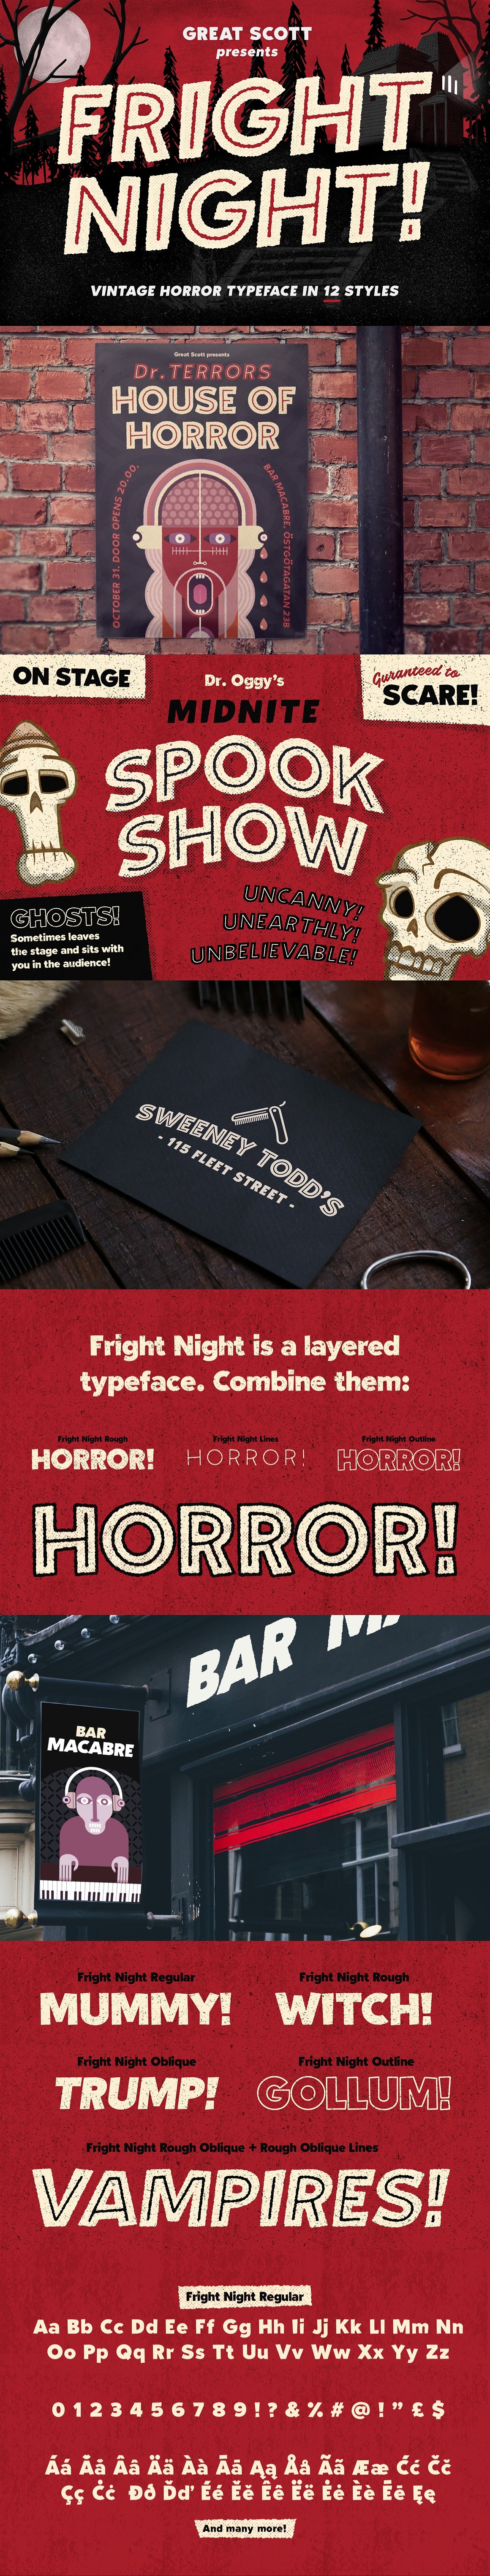 The Perfect Halloween Font by Great Scott